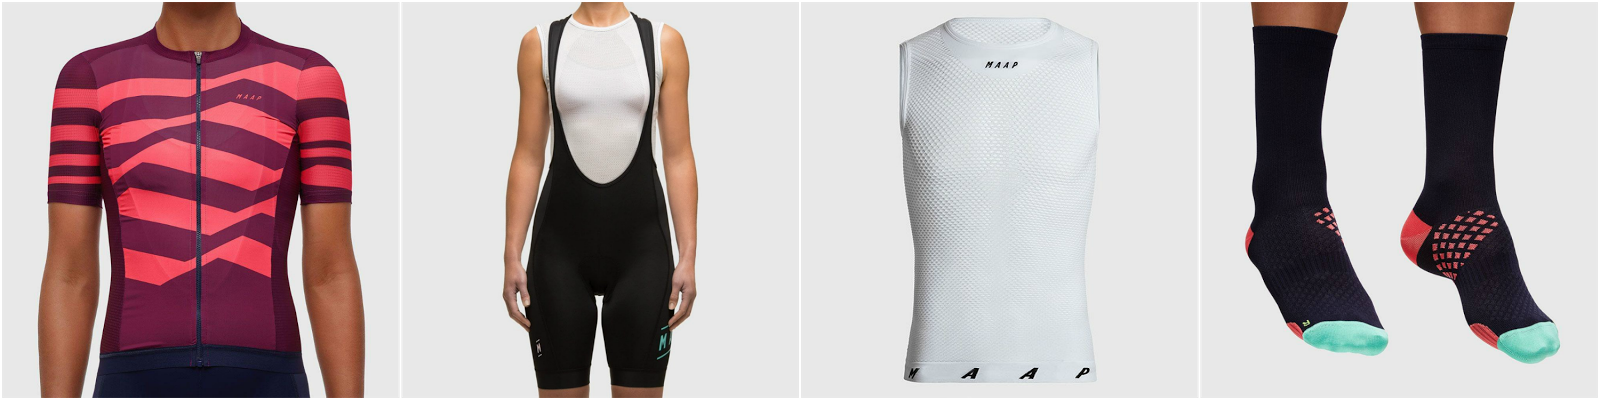 Their mesh base layer is a super lightweight fibre which leaves the skin  dry and in a constant temperature between various micro-climates. 056a7acd9